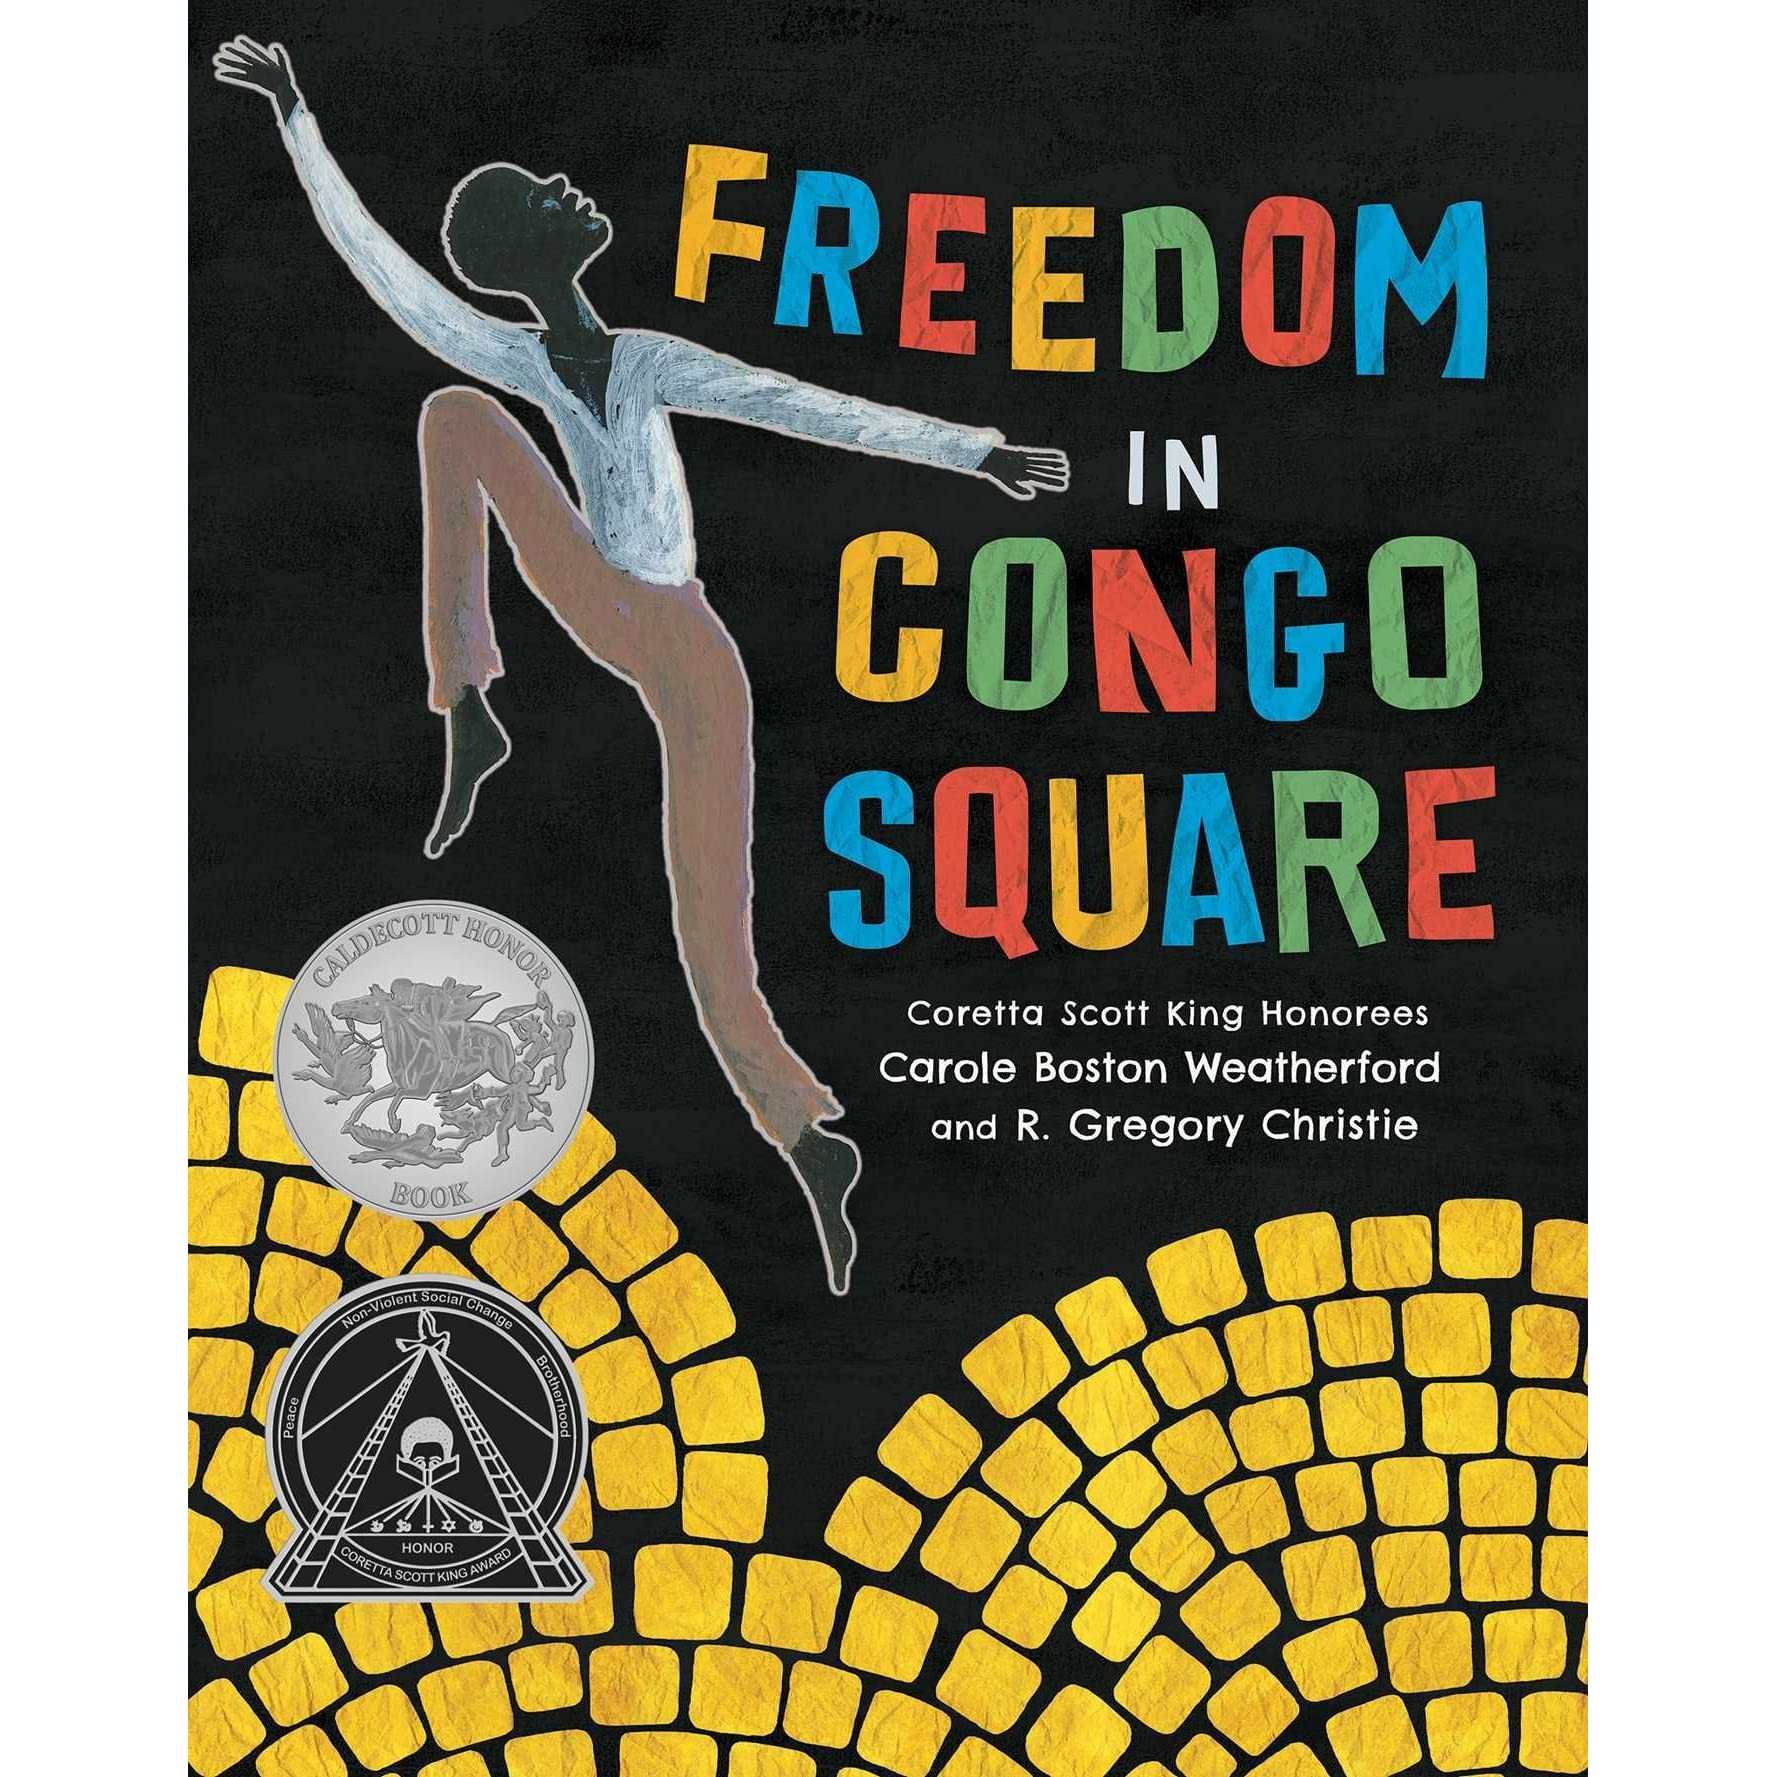 dom in congo square by carole boston weatherford reviews dom in congo square by carole boston weatherford reviews discussion bookclubs lists